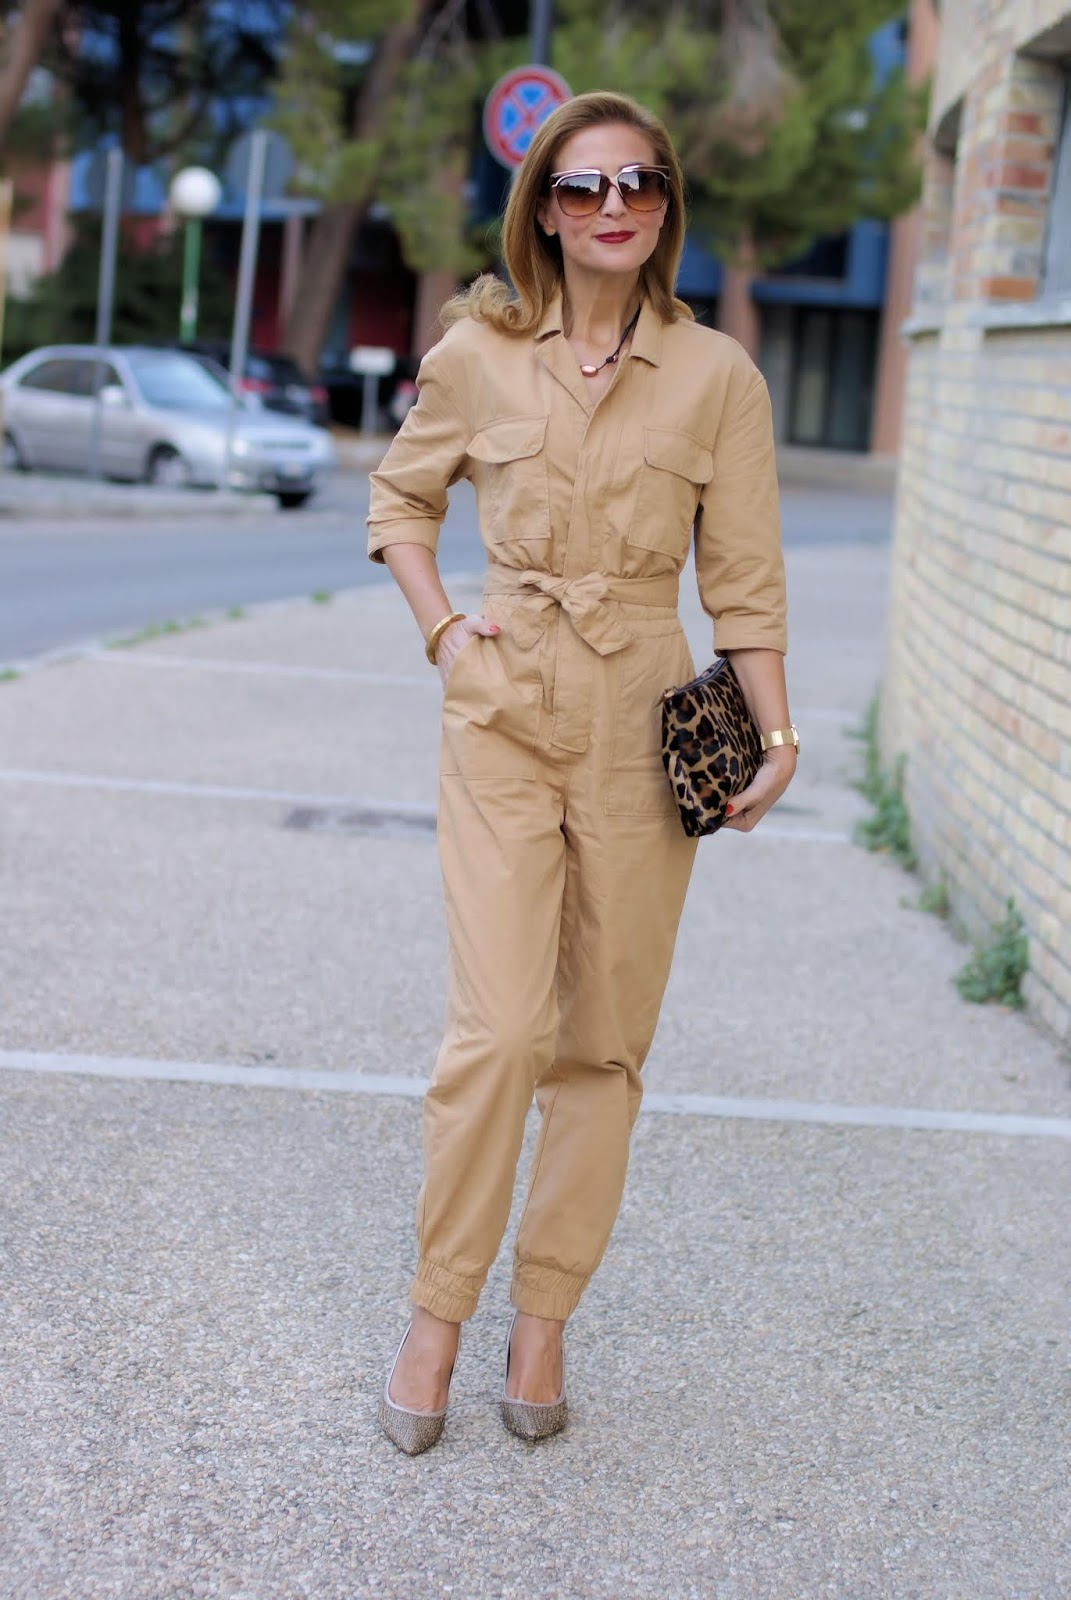 Guardaroba Capsula Cos' How To Wear The Utility Jumpsuit Trend Fashion And Cookies